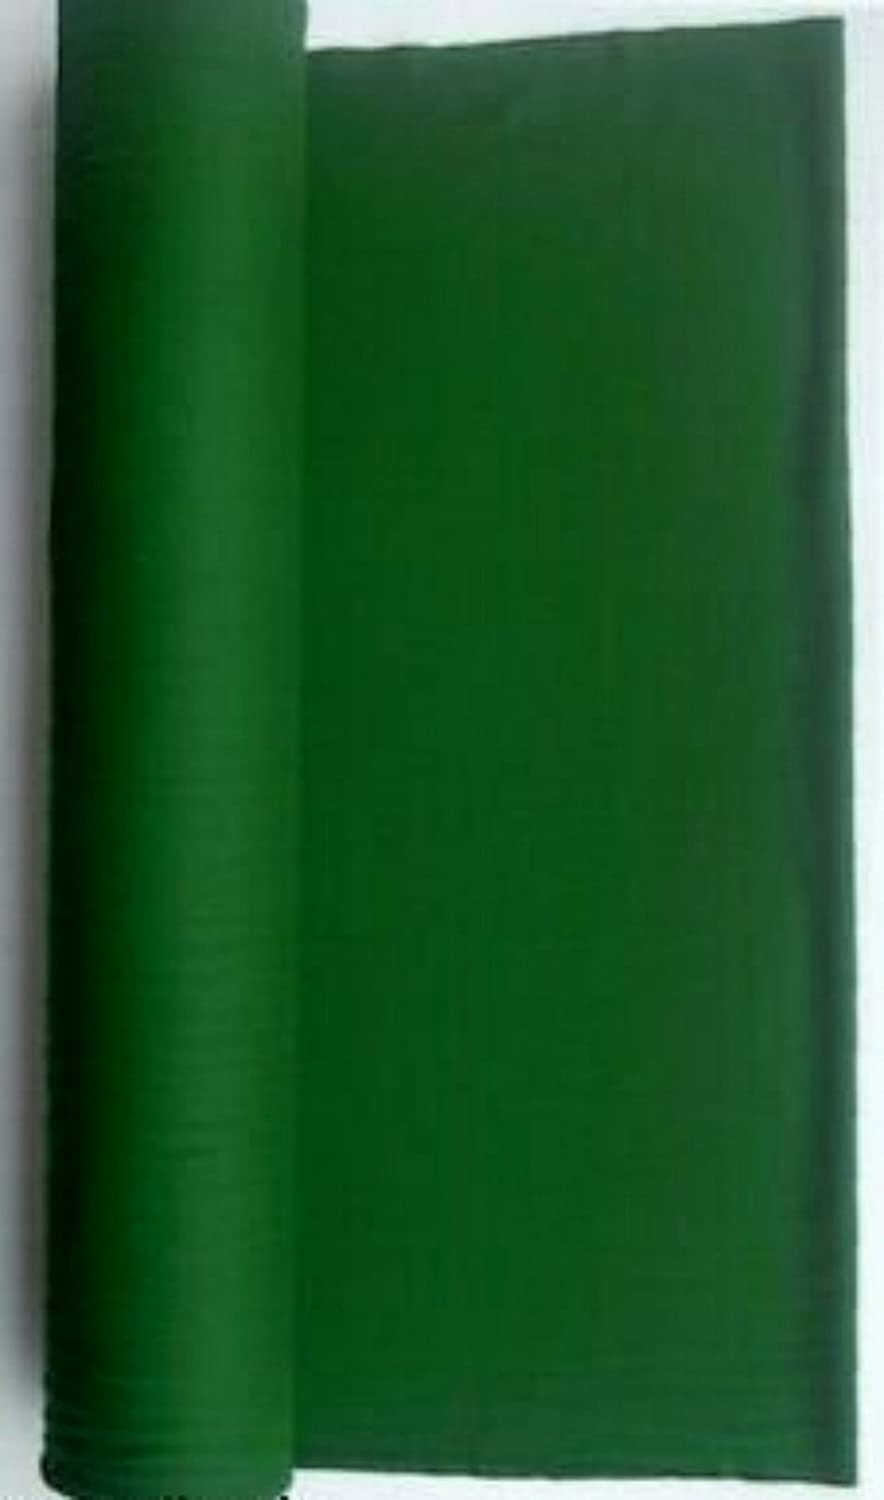 Amazon.com : 21 Ounce Pool Table Billiard Poker Cloth Felt Green Priced Per  Foot : Sports U0026 Outdoors